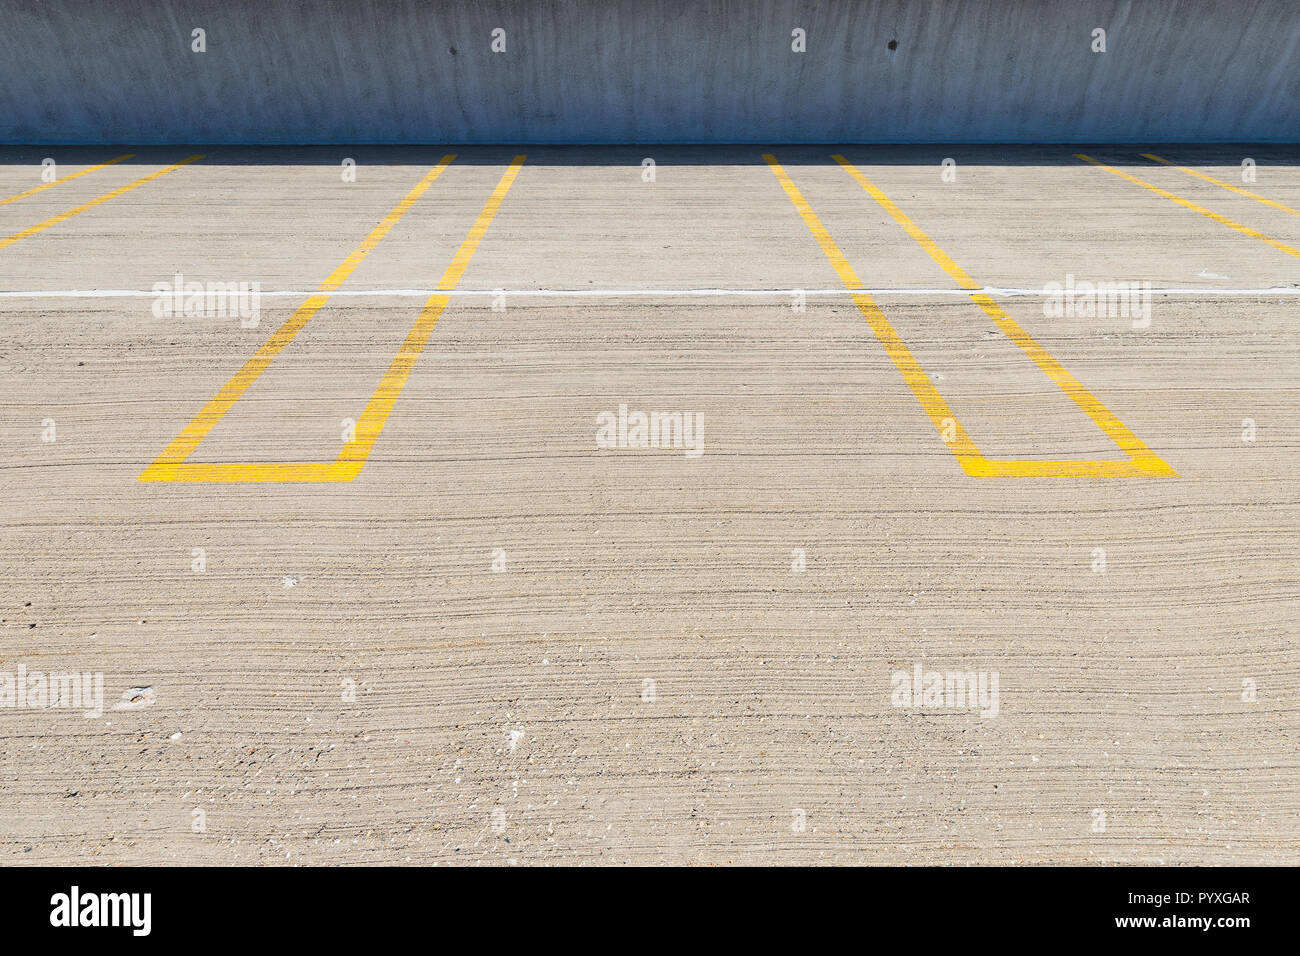 Empty parking spaces with yellow lines in a parking garage. Stock Photo